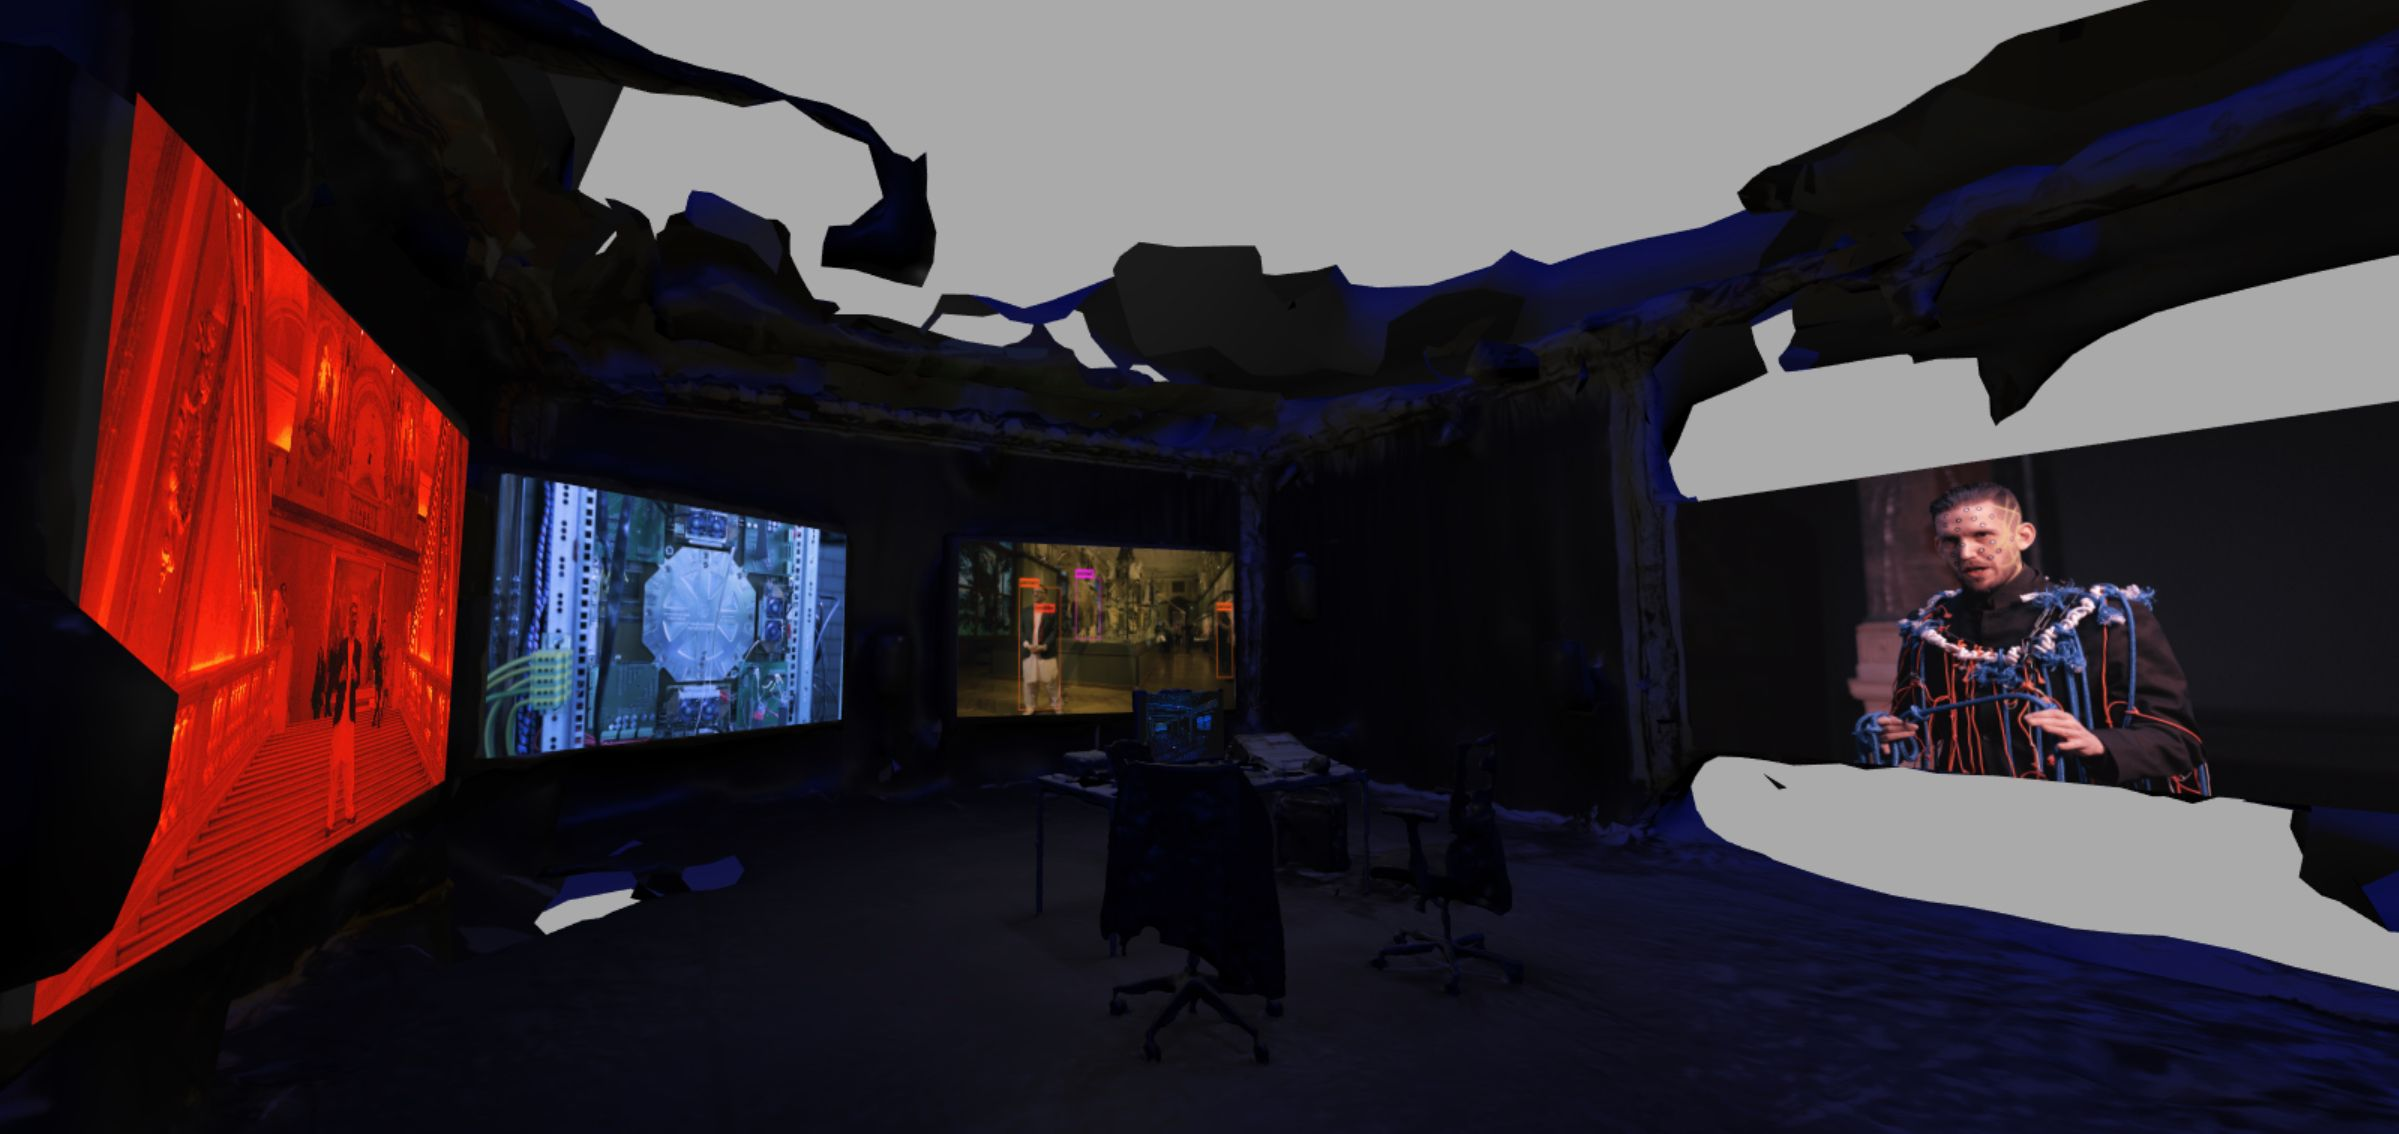 Academy for theater and digitality